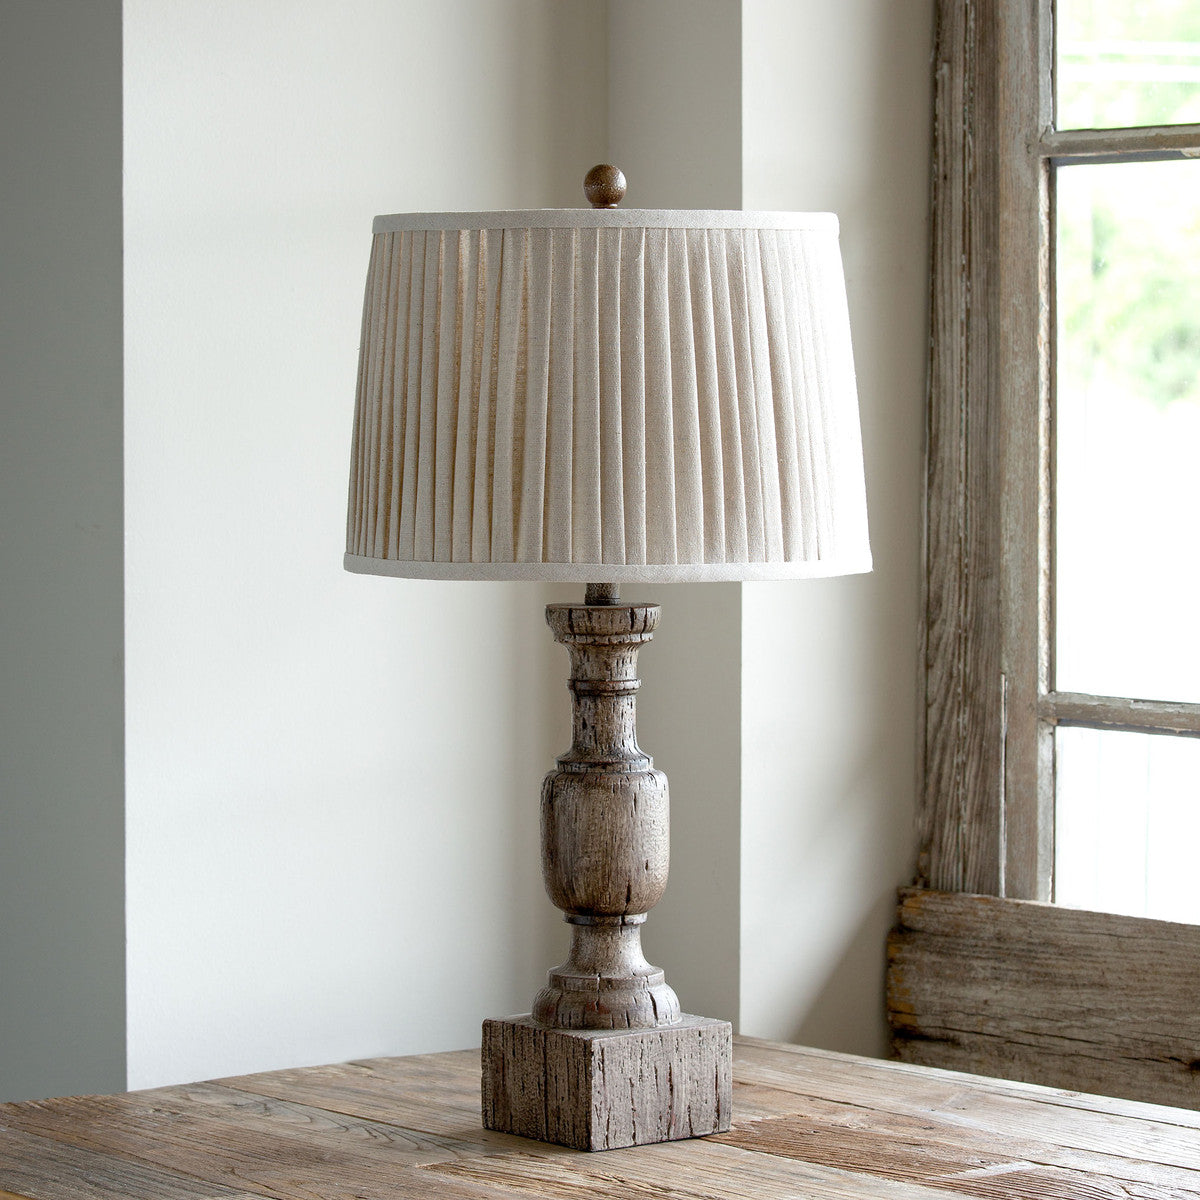 Lovecup Driftwood Look Table Lamp L448